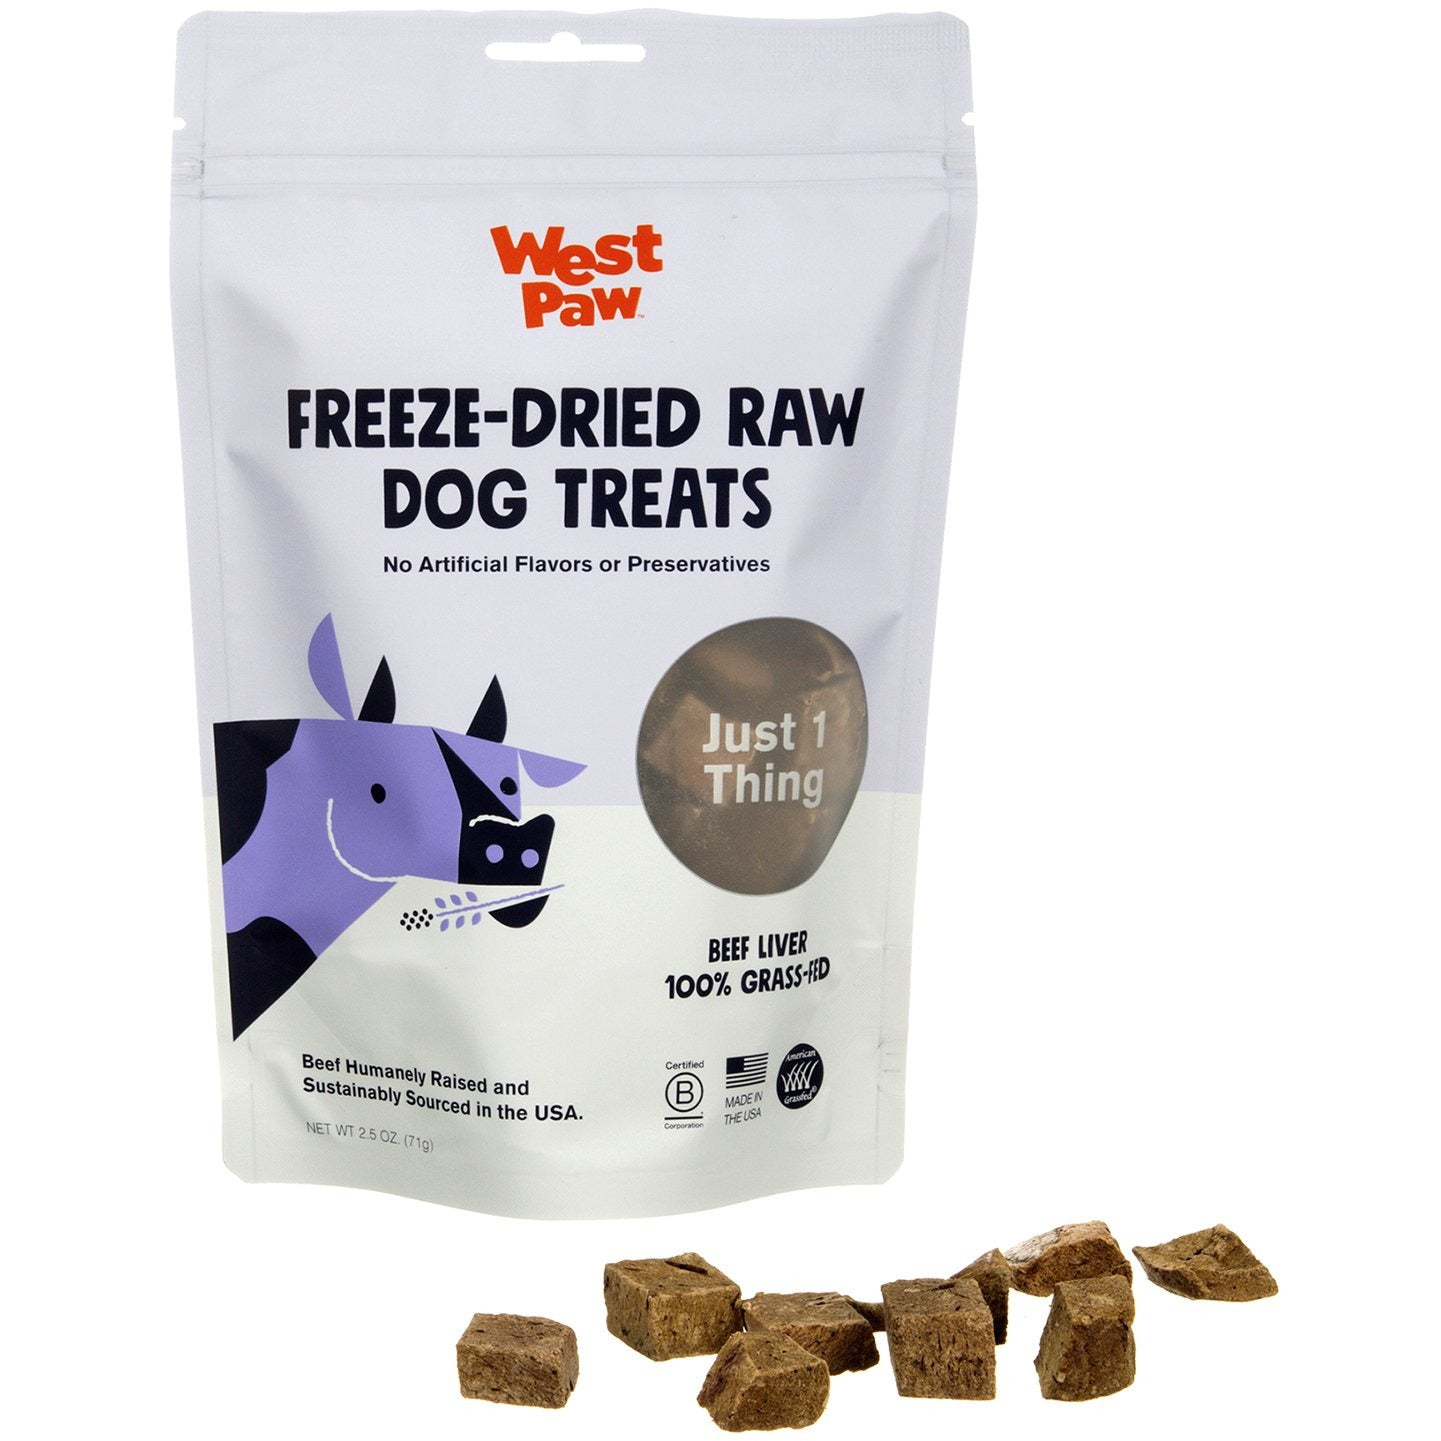 West Paw Freeze-Dried Beef Liver Dog Treat, 2.5-oz